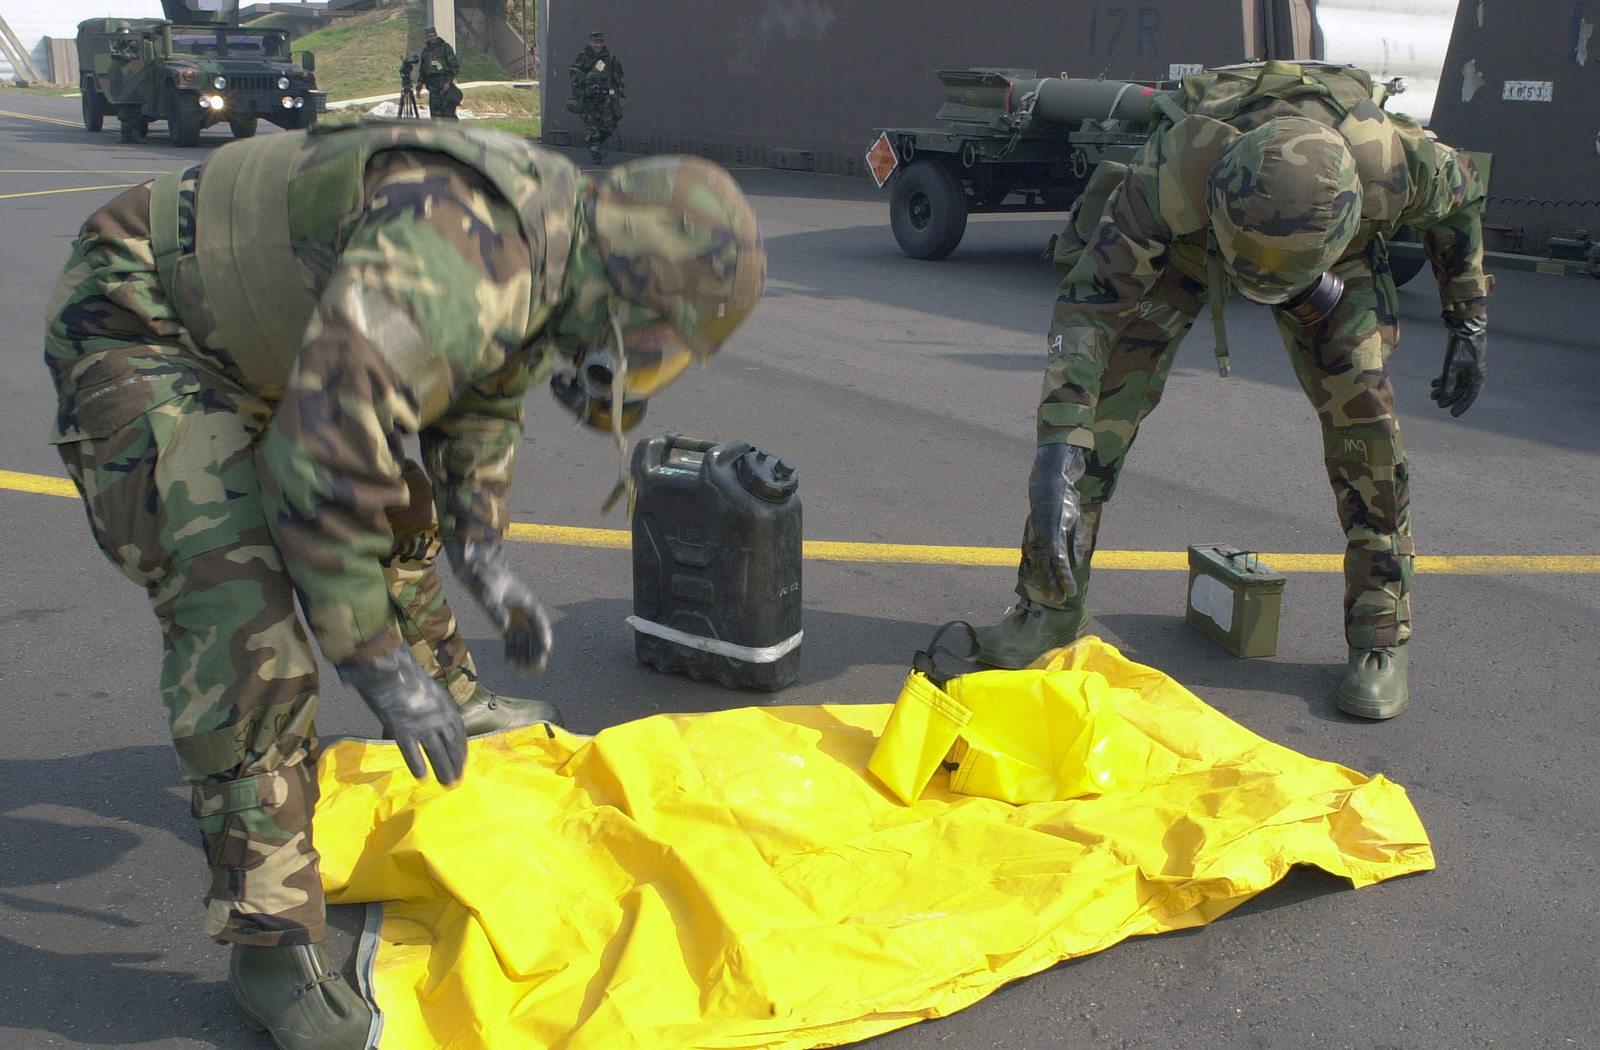 SENIOR AIRMAN (SRA), Joe Deslauriers, and SRA Brian Borrero both, USAF, 51st Civil Engineer Squadron dressed in Mission Oriented Protective Posture response level 4 (MOPP-4) gear, prepare to set up a decontamination wash station during the Initial Response Readiness Exercise/Combat Employment Readiness Exercise (IRRE/CERE) at Osan AB, Korea